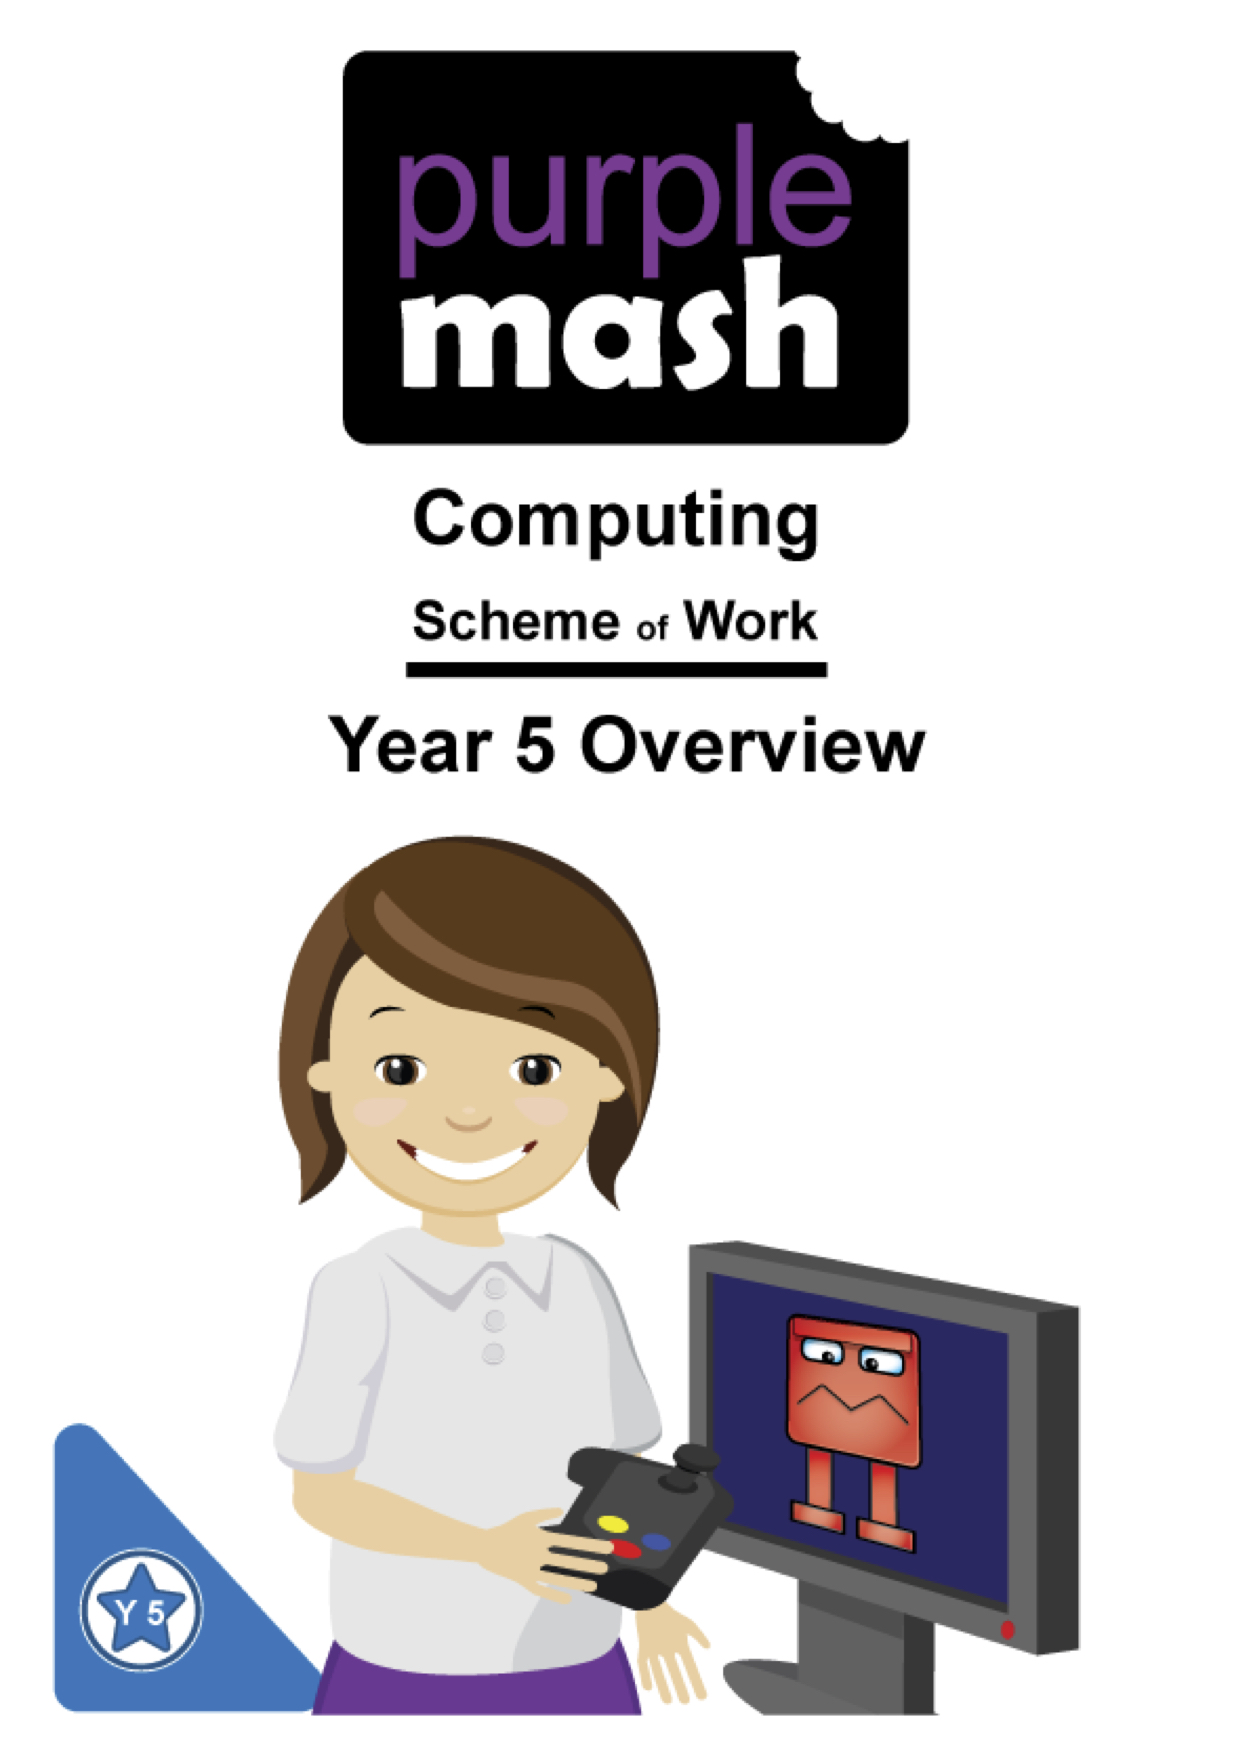 Purple Mash Scheme of Work Year 5 Overview.jpg